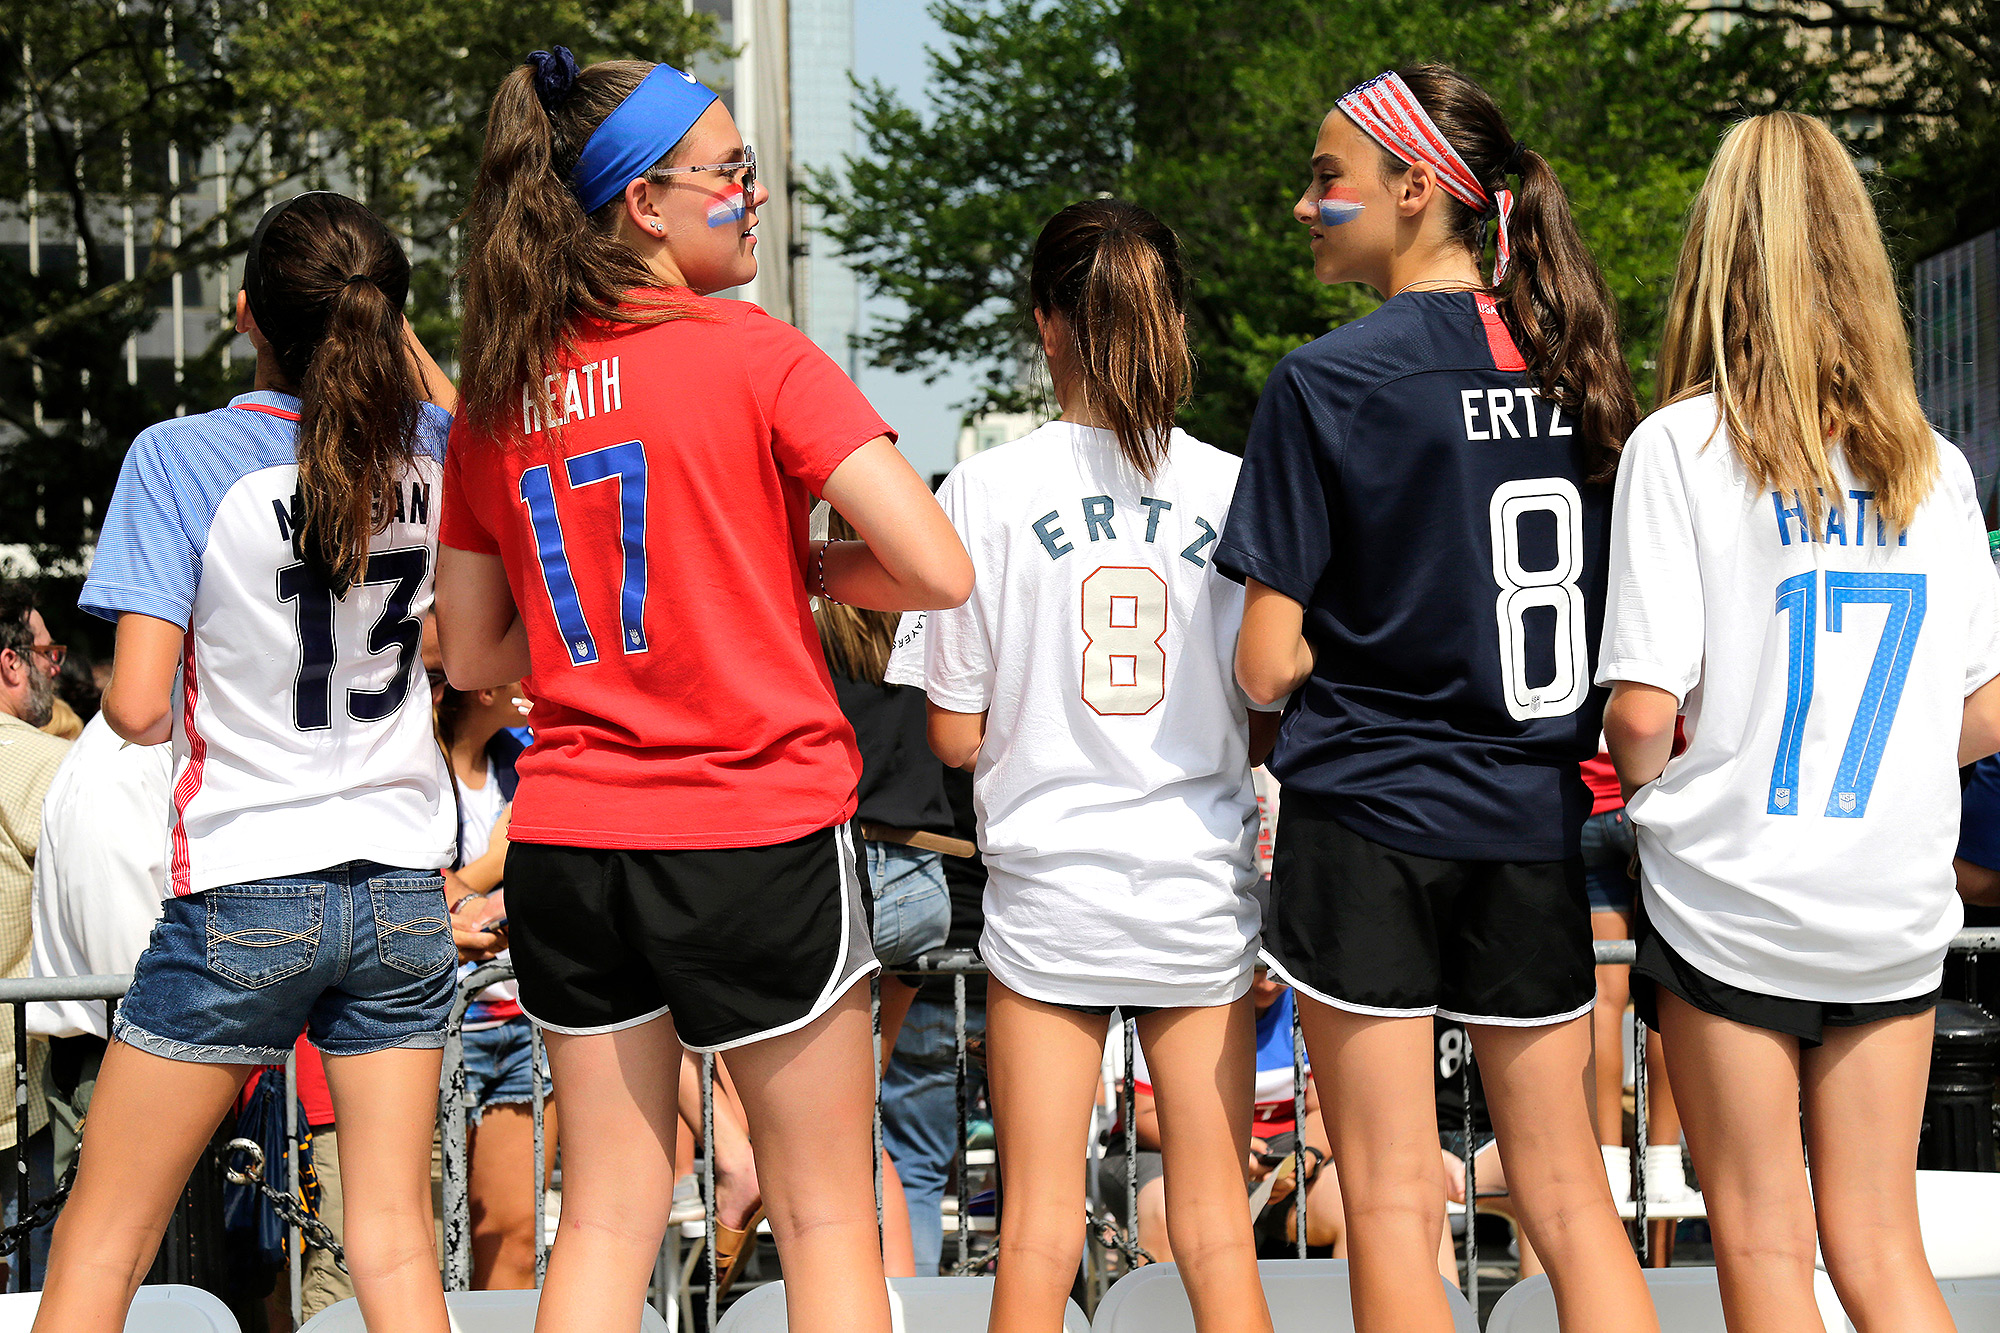 Girls in soccer jerseys wait for the arrival of the U.S. women's soccer team at City Hall,